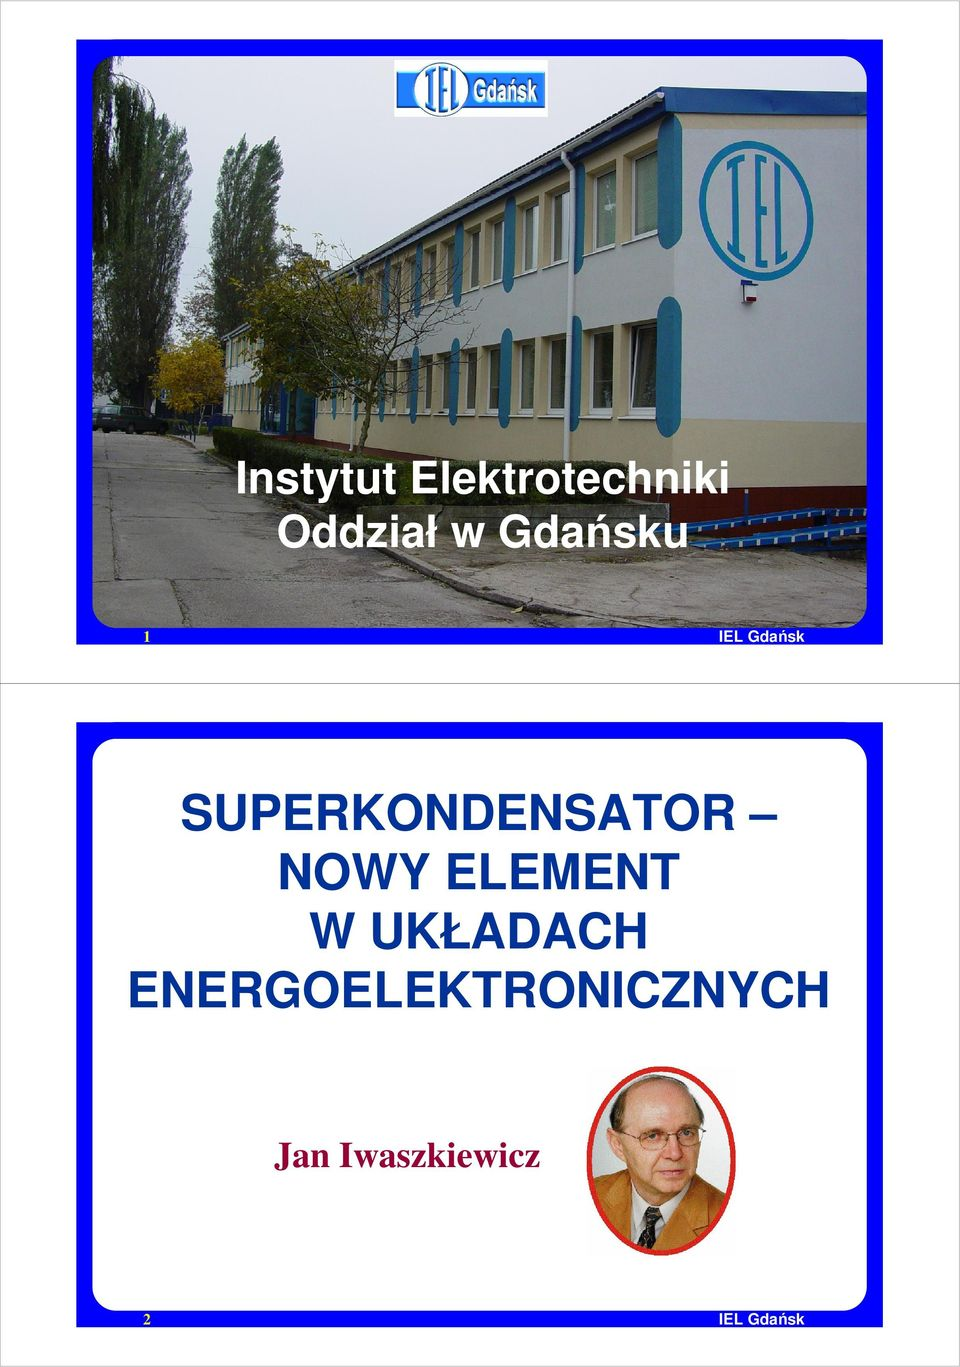 SUPERKONDENSATOR NOWY ELEMENT W